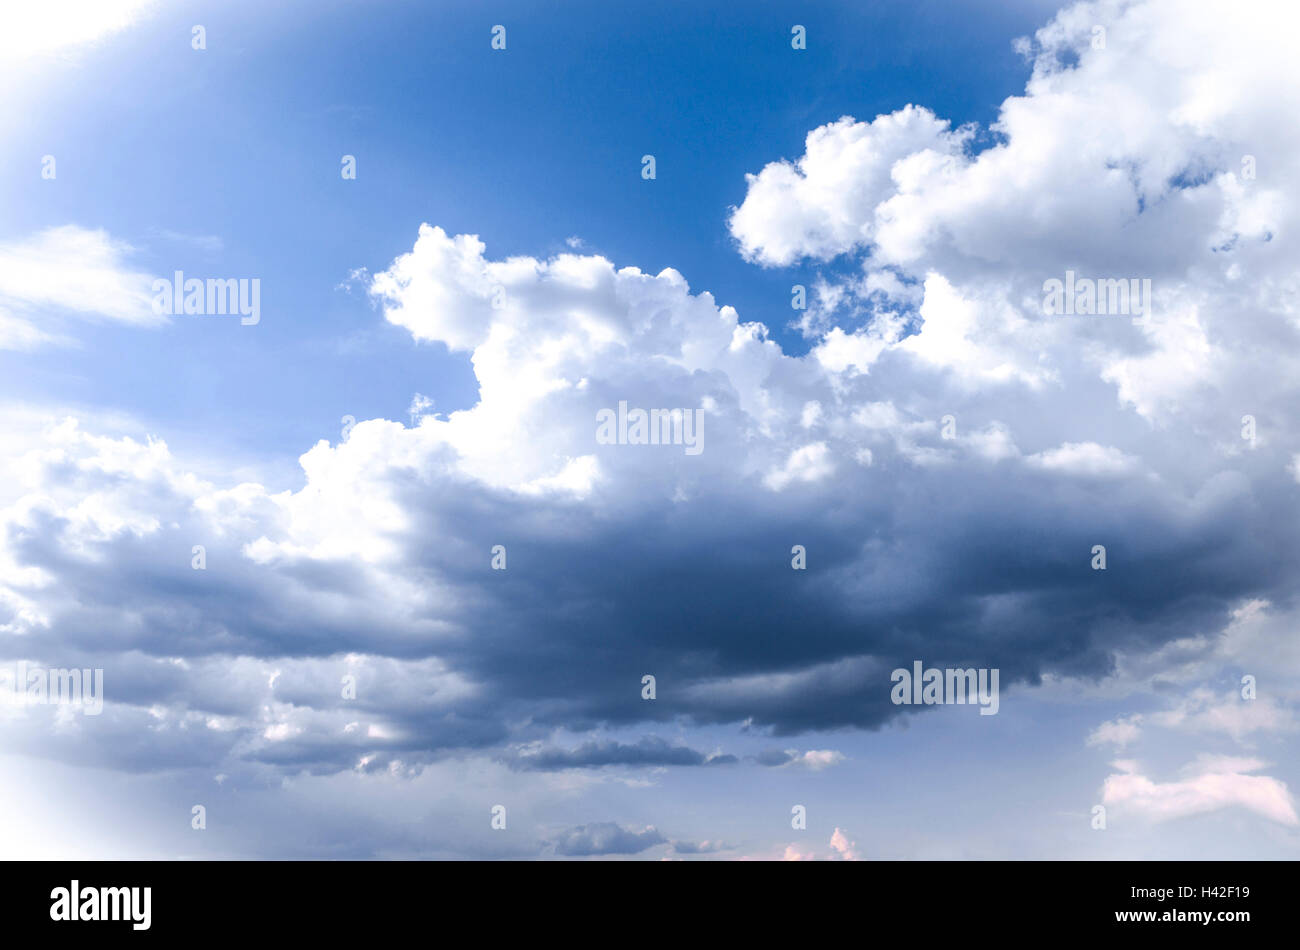 Large storm clouds on a bright sunny spring day - Stock Image